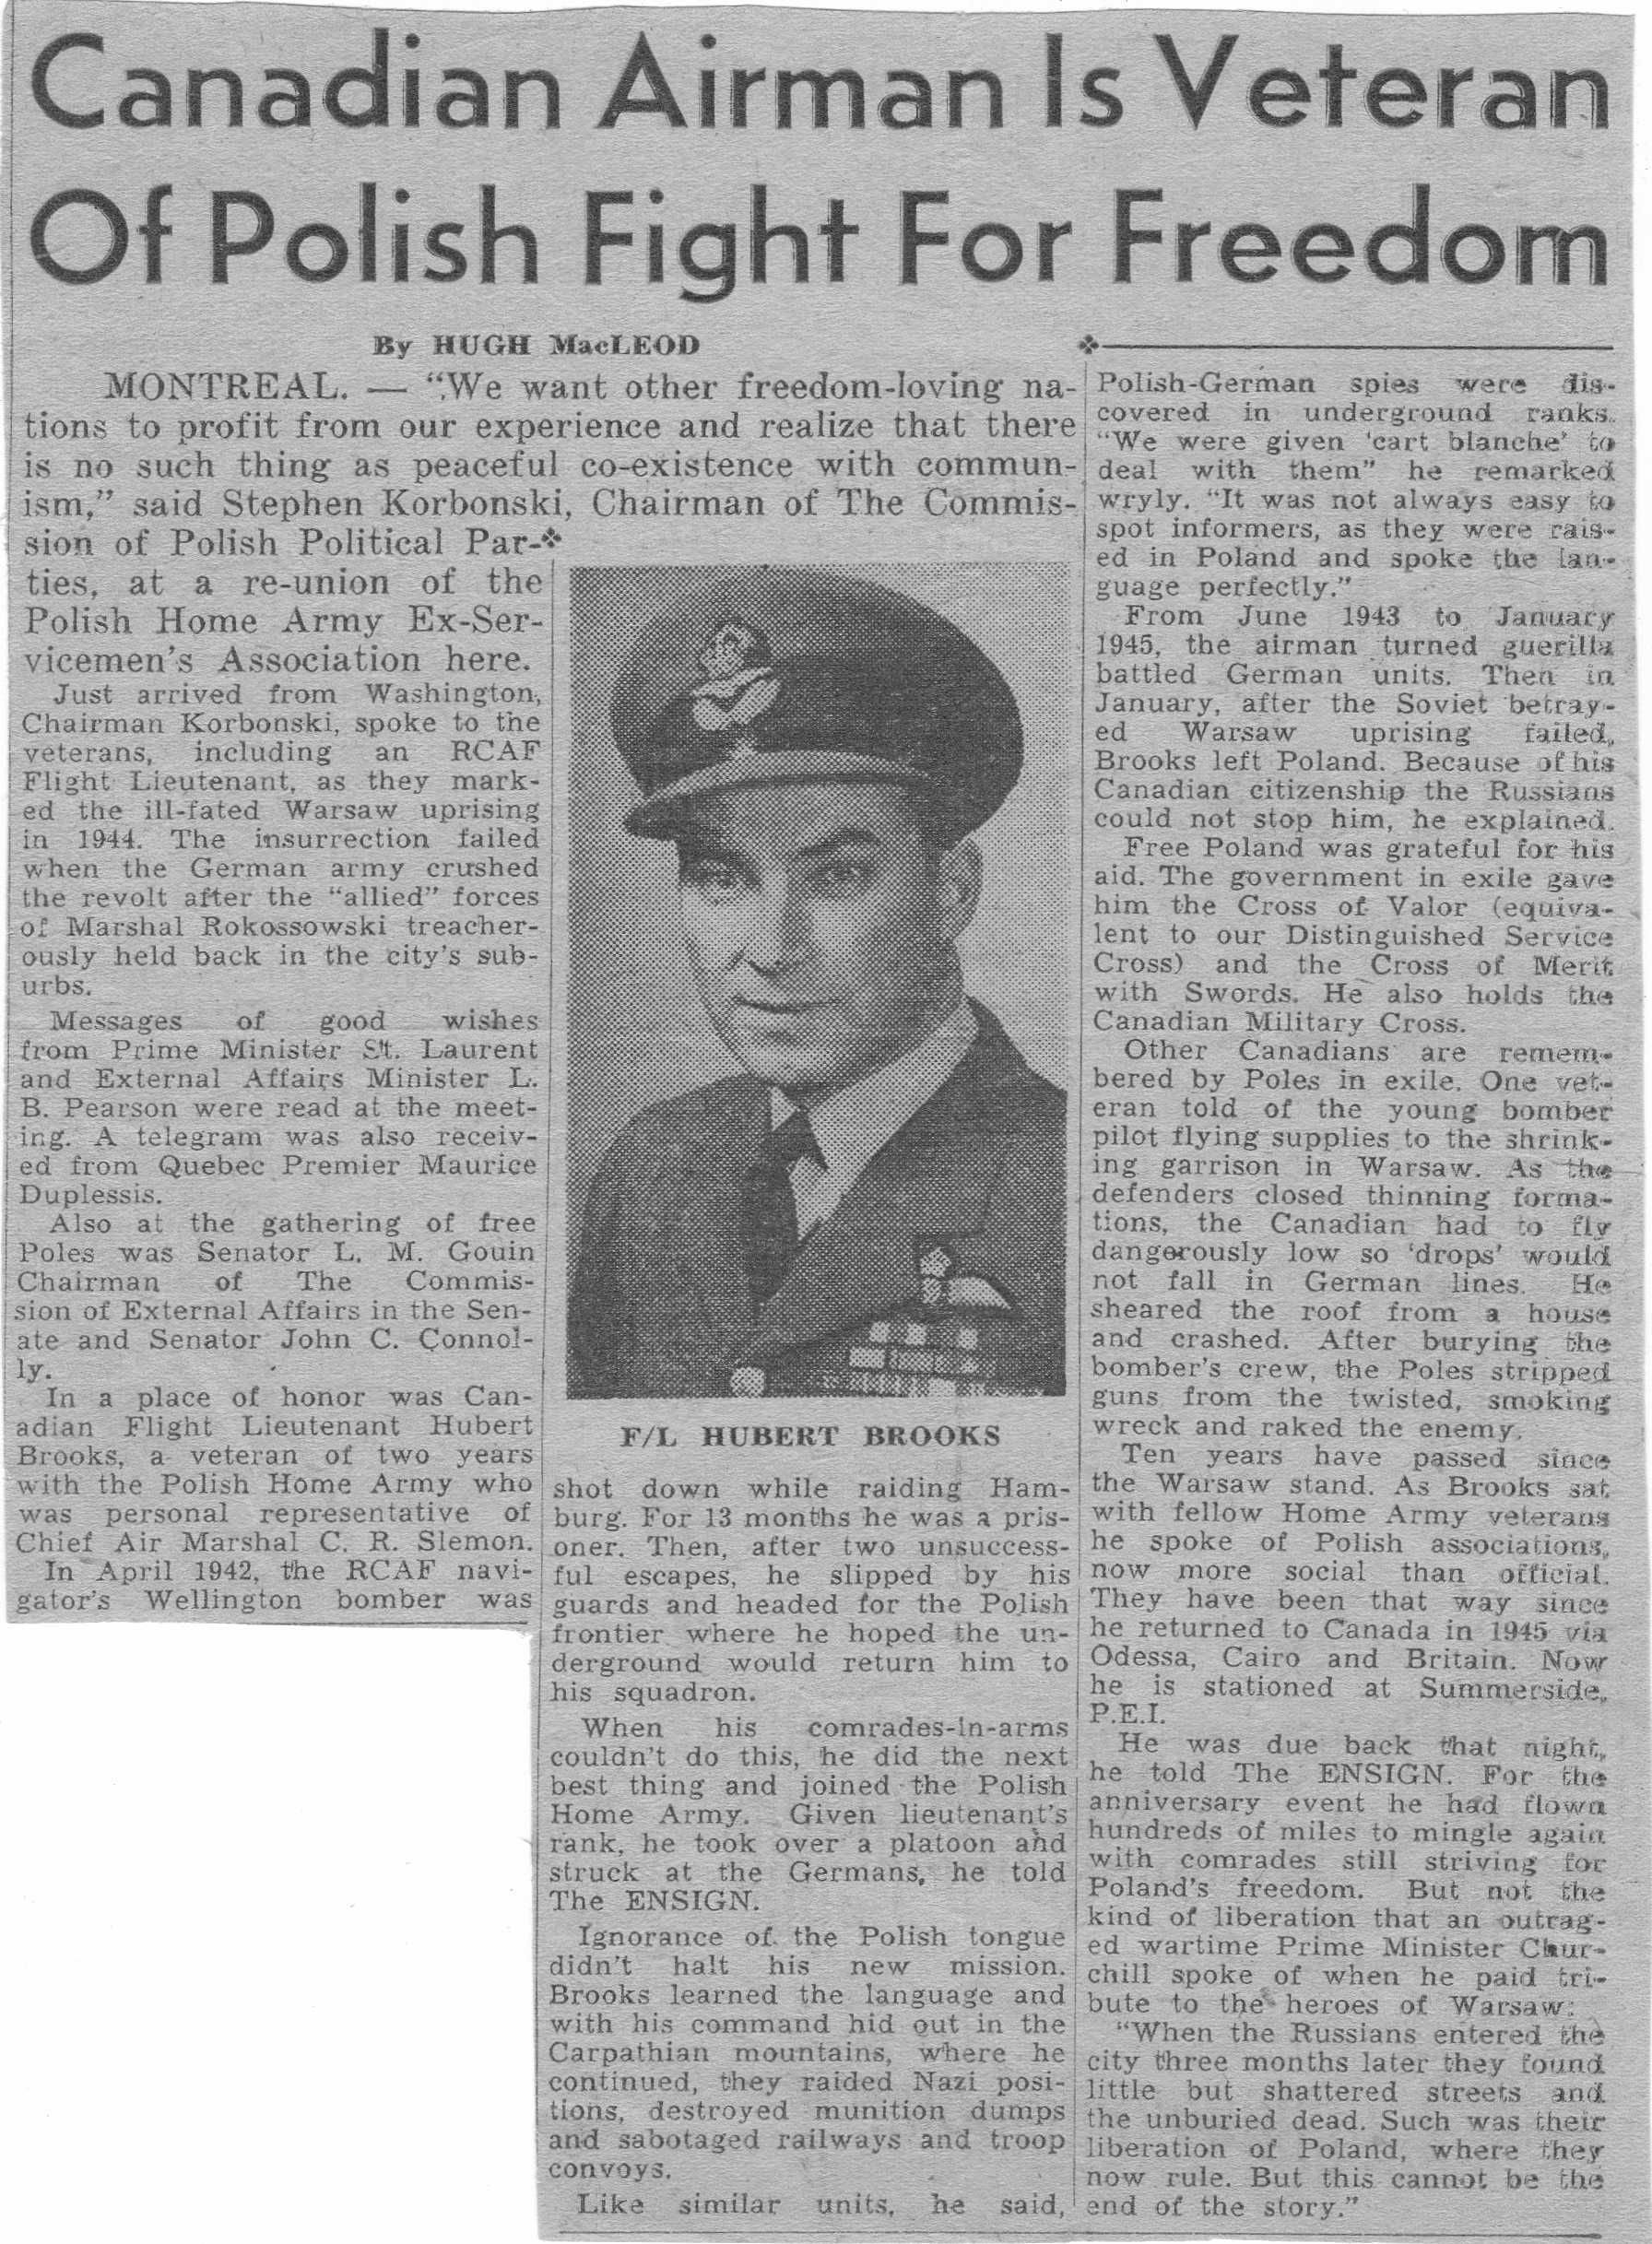 Photo: Newspaper Article on Hubert Brooks Veteran of Polish Freedom Fight